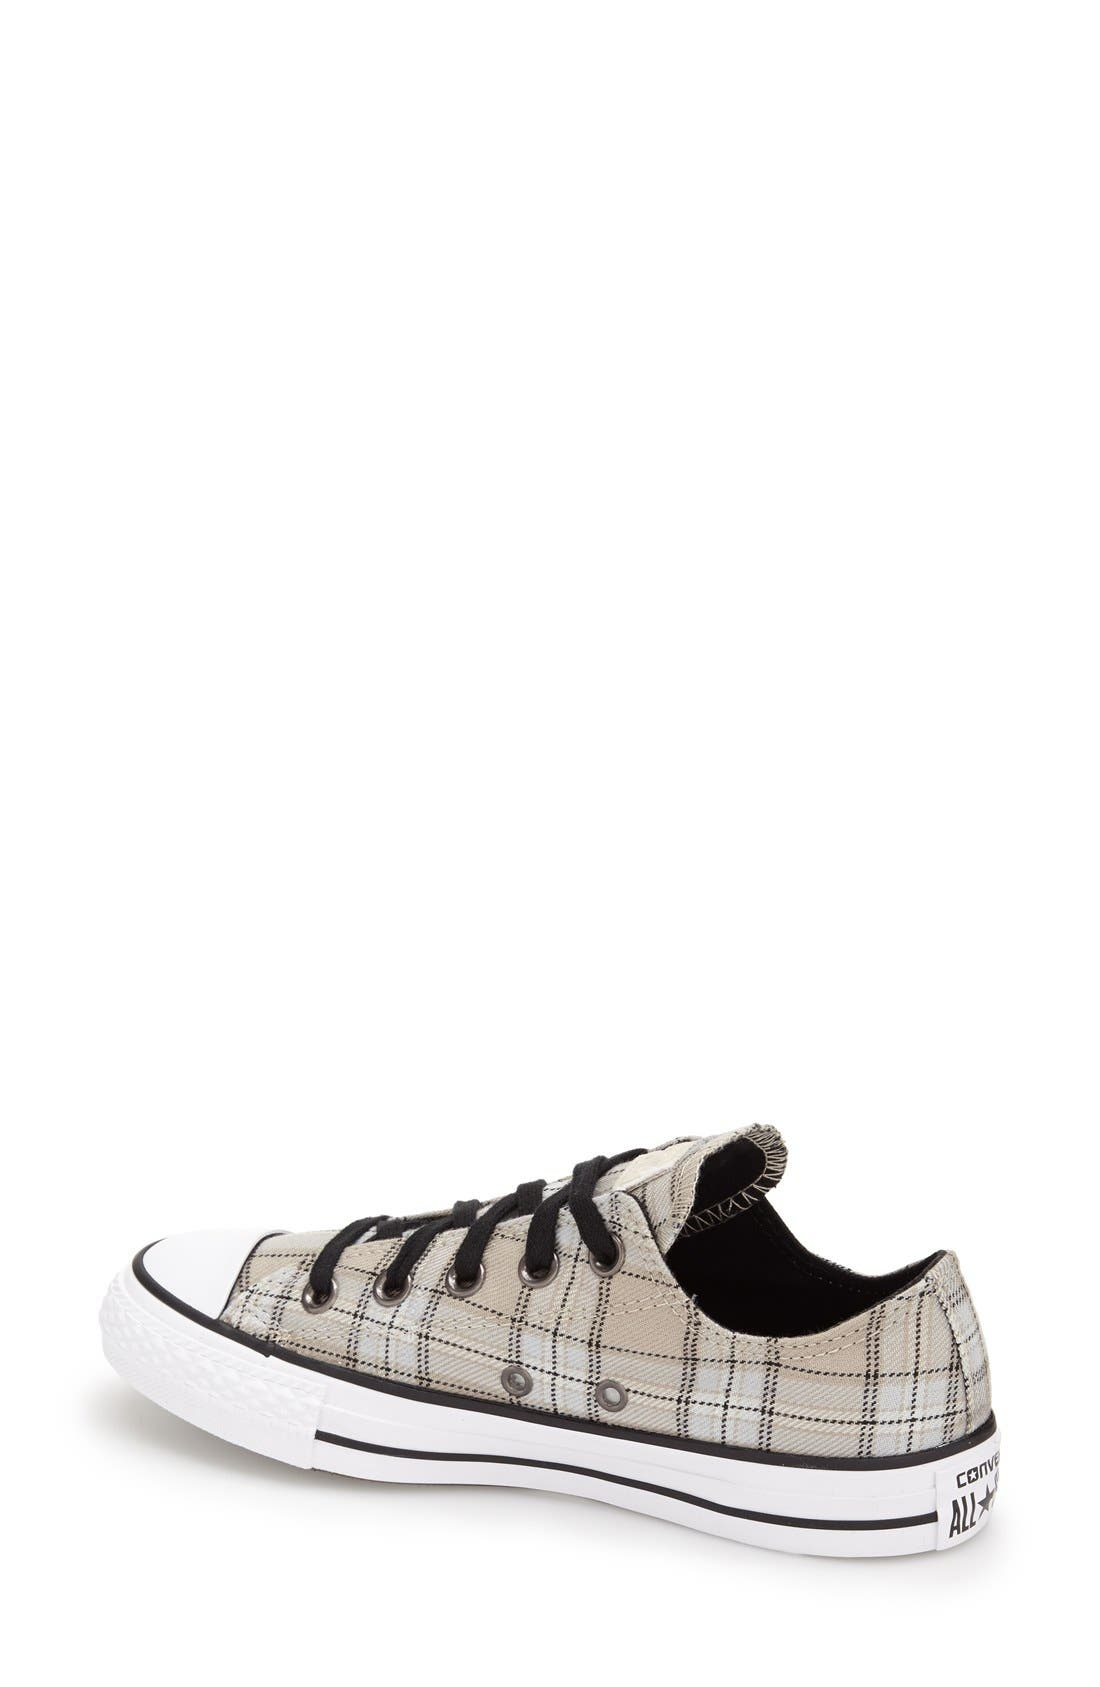 Chuck Taylor<sup>®</sup> All Star<sup>®</sup> Plaid Low Top Sneaker,                             Alternate thumbnail 4, color,                             250